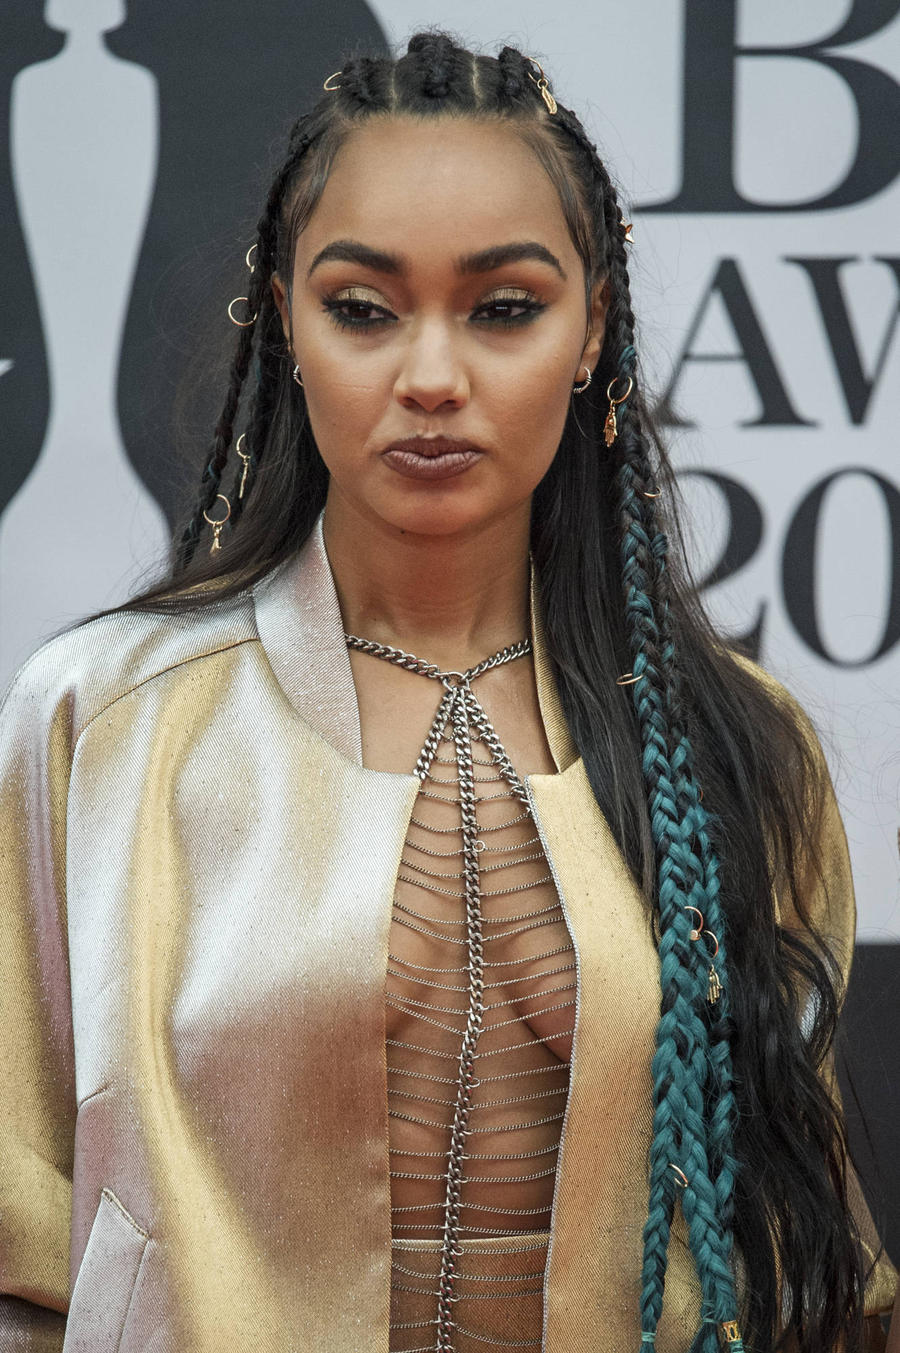 Leigh-anne Pinnock And Jordan Kiffin Breaks Up - Report